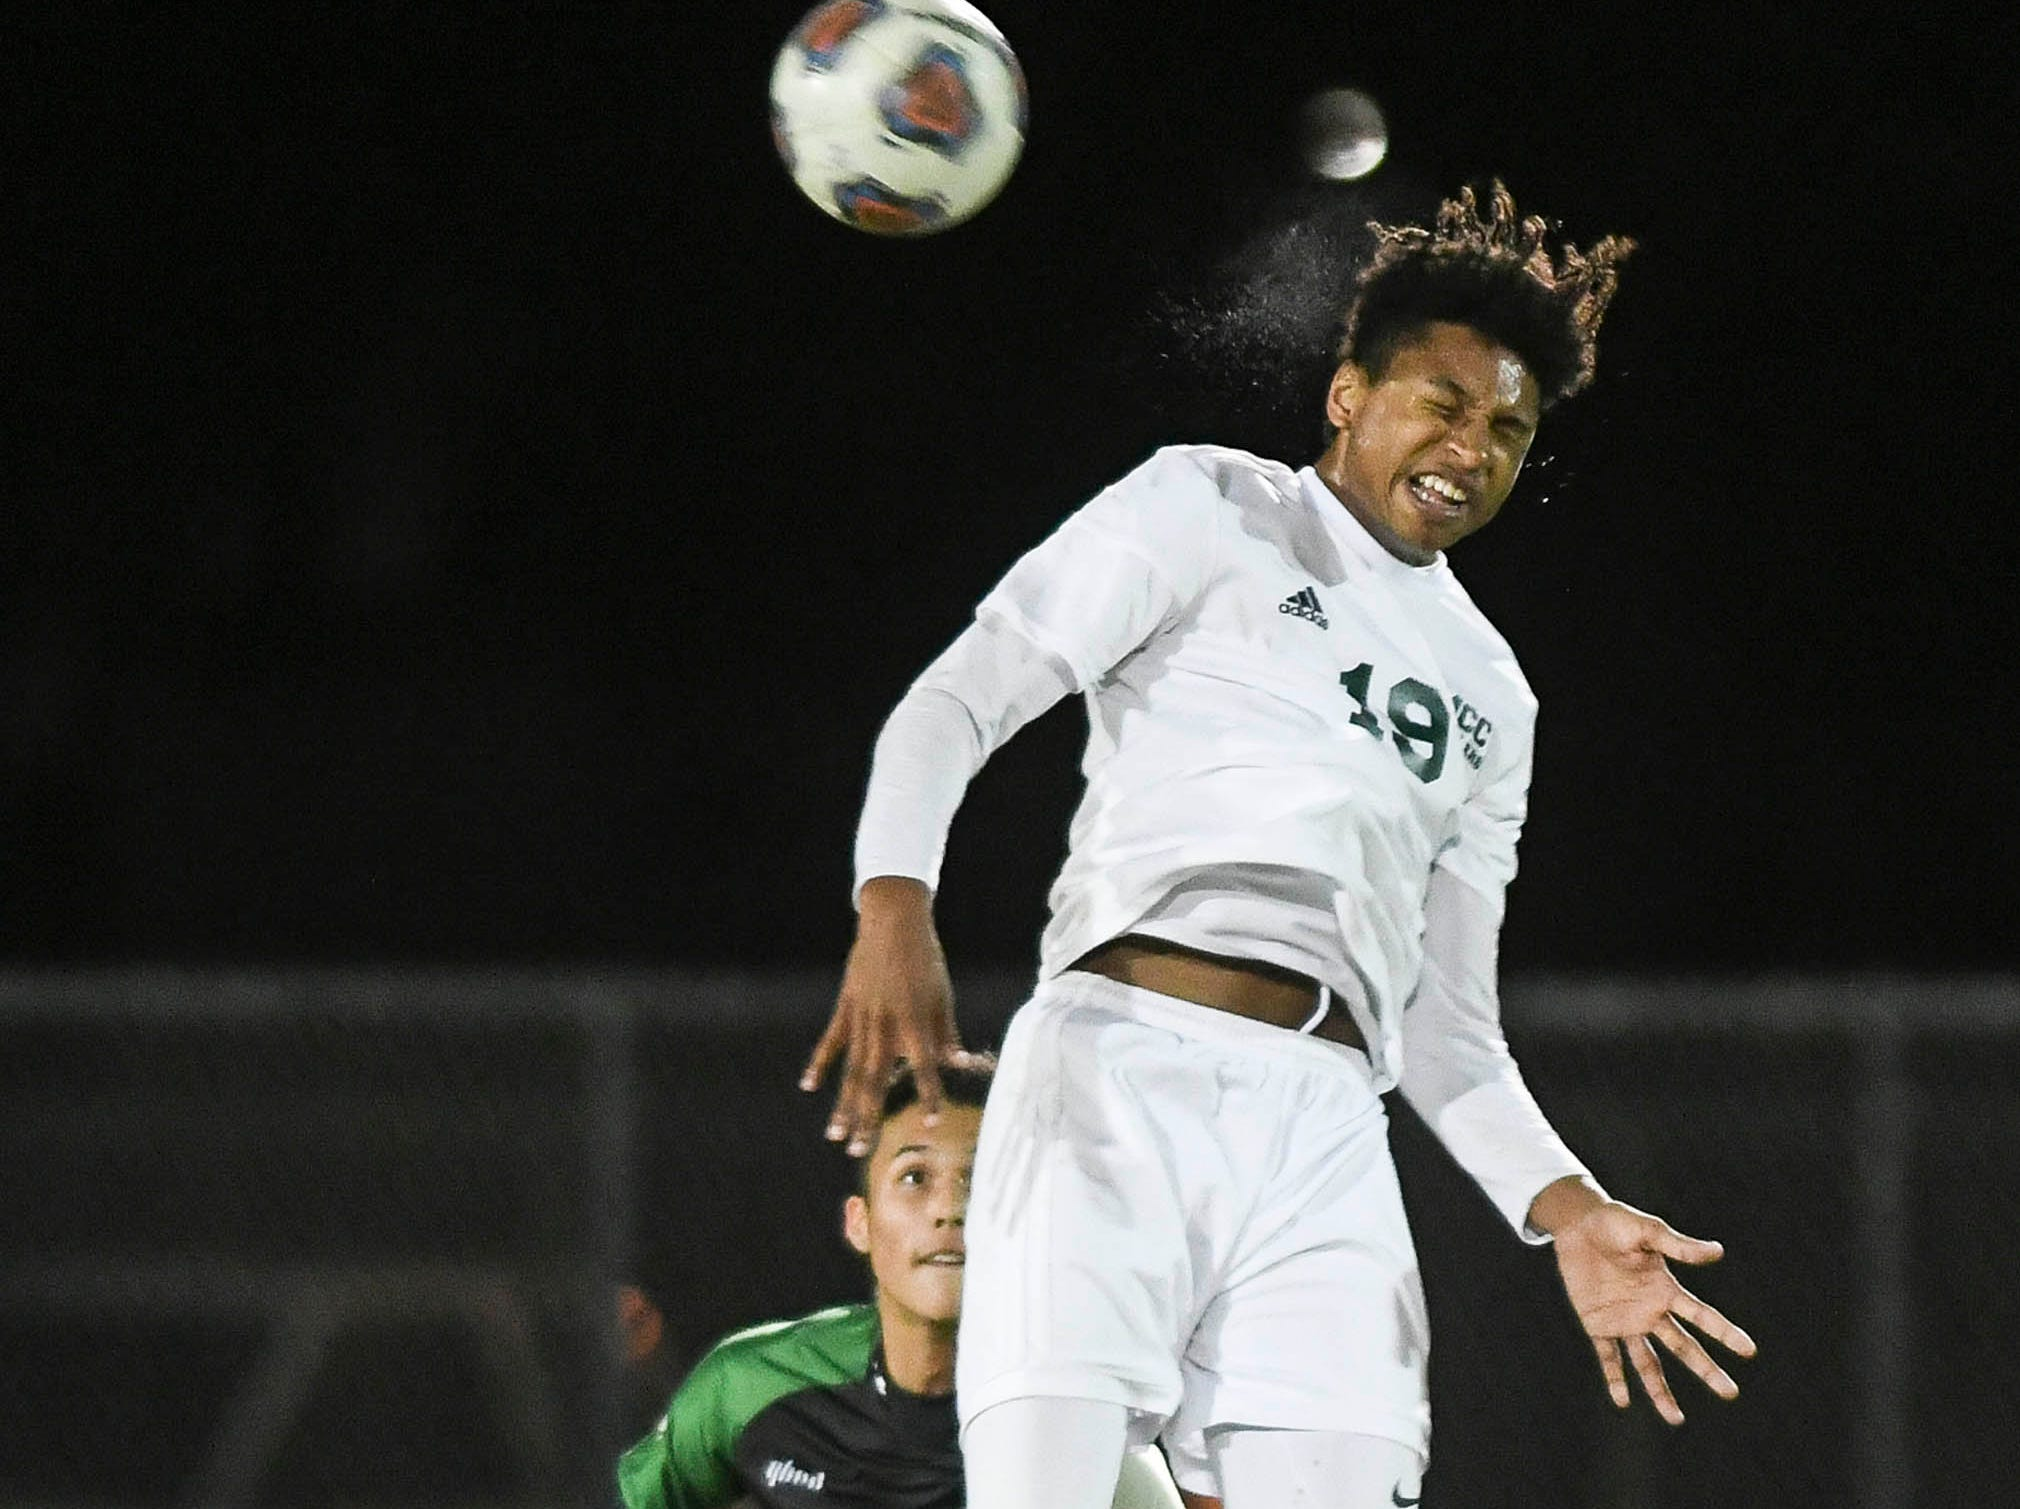 Issac Begin of Melbourne Central Catholic heads the ball during Friday's game in Viera